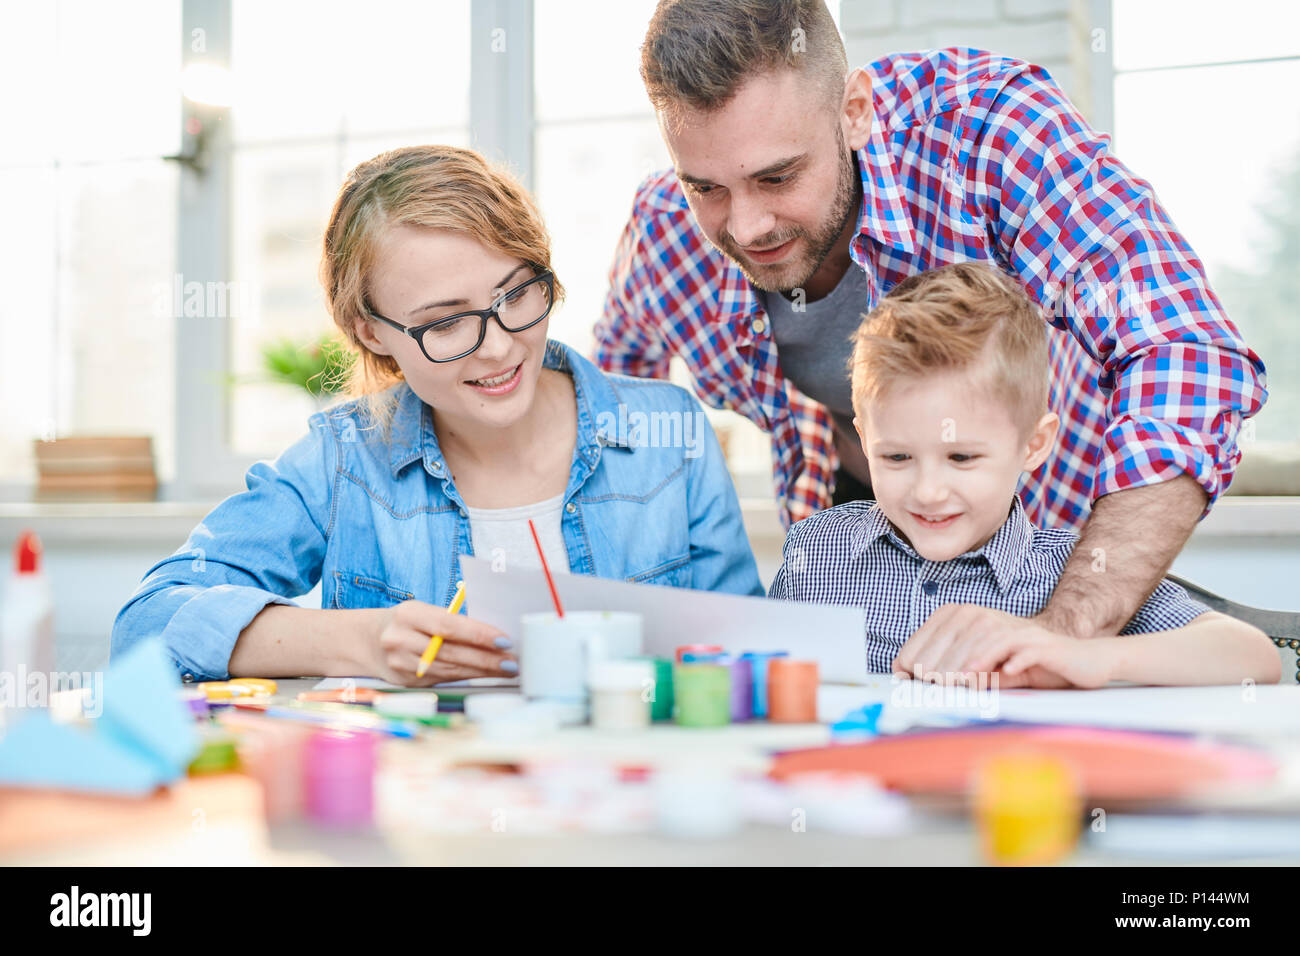 Loving Family Expressing Creativity - Stock Image